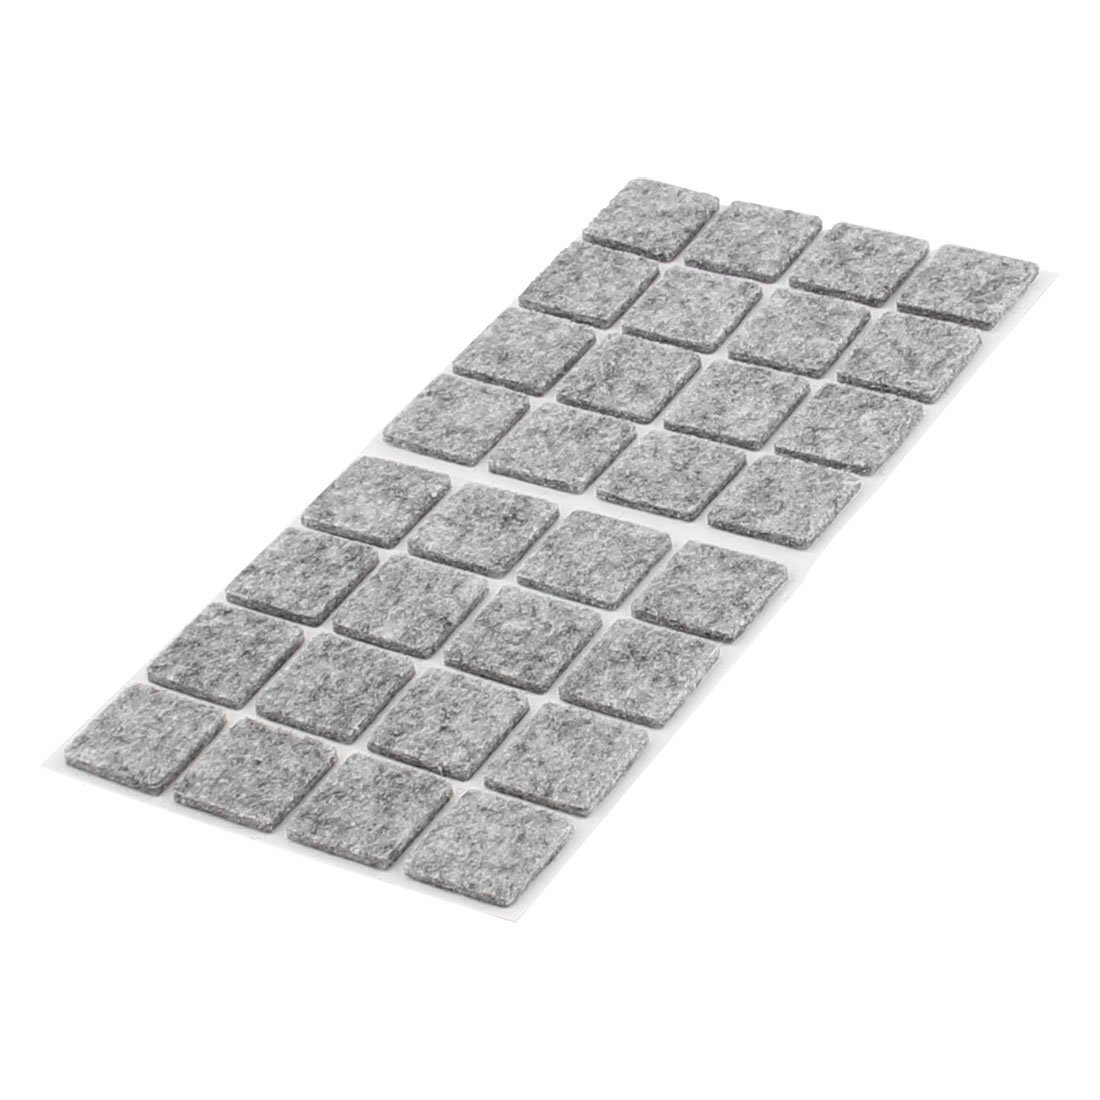 uxcell Table Chair Legs Square Self Adhesive Furniture Felt Pads Cover Protector 18 x 18mm 32pcs Gray a16051100ux0792